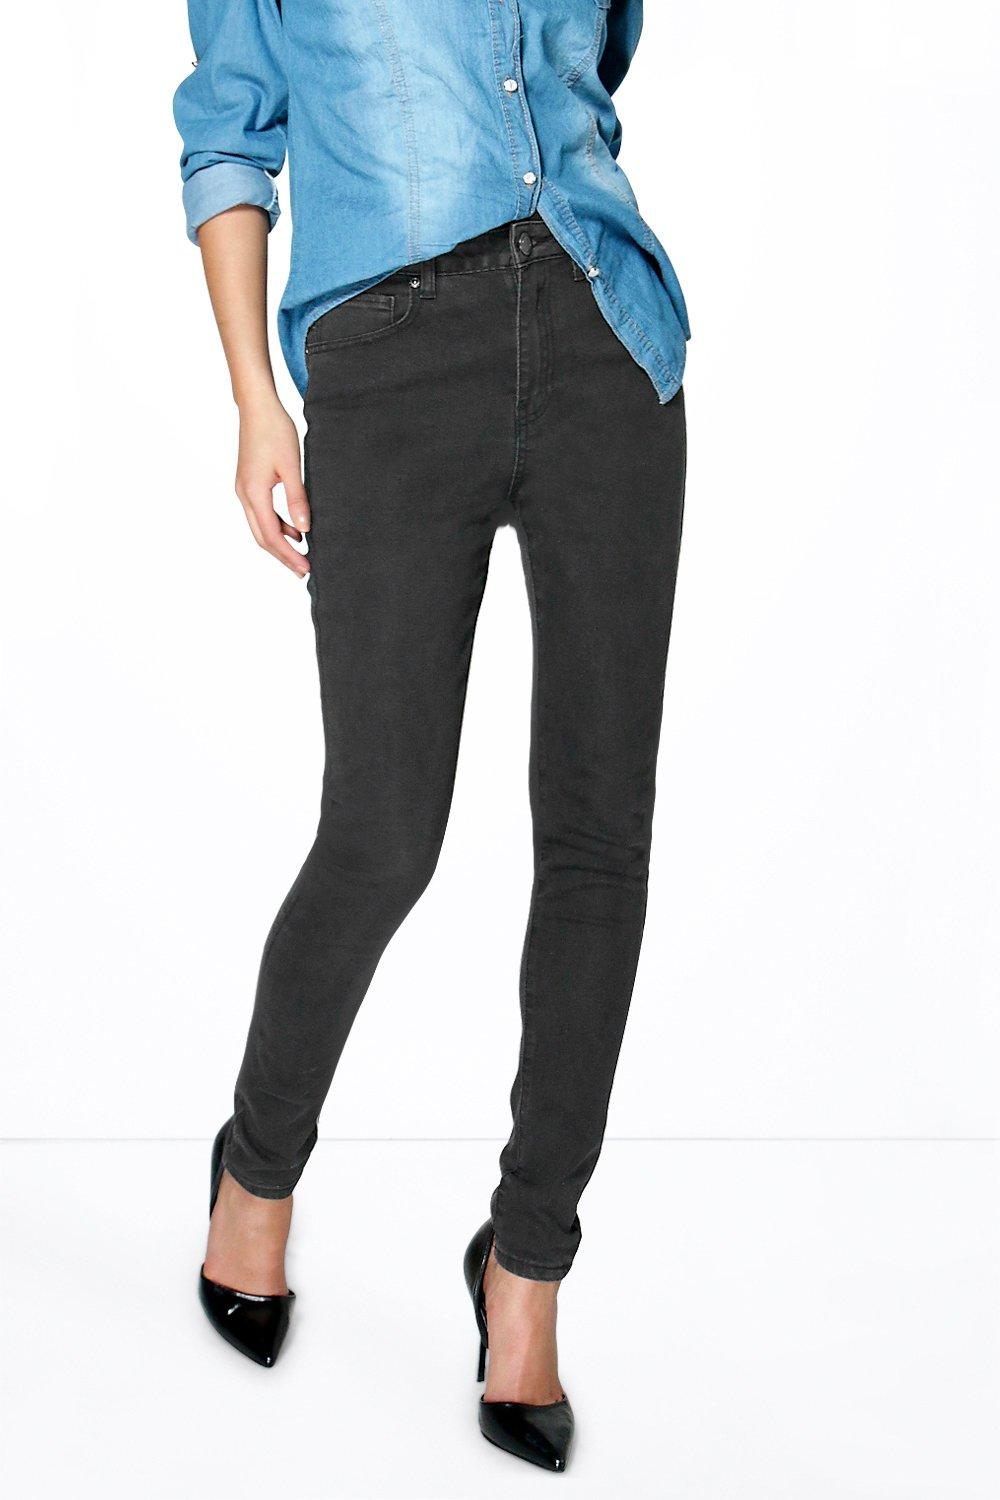 Joanna 5-Pocket High Rise Washed Black Skinny